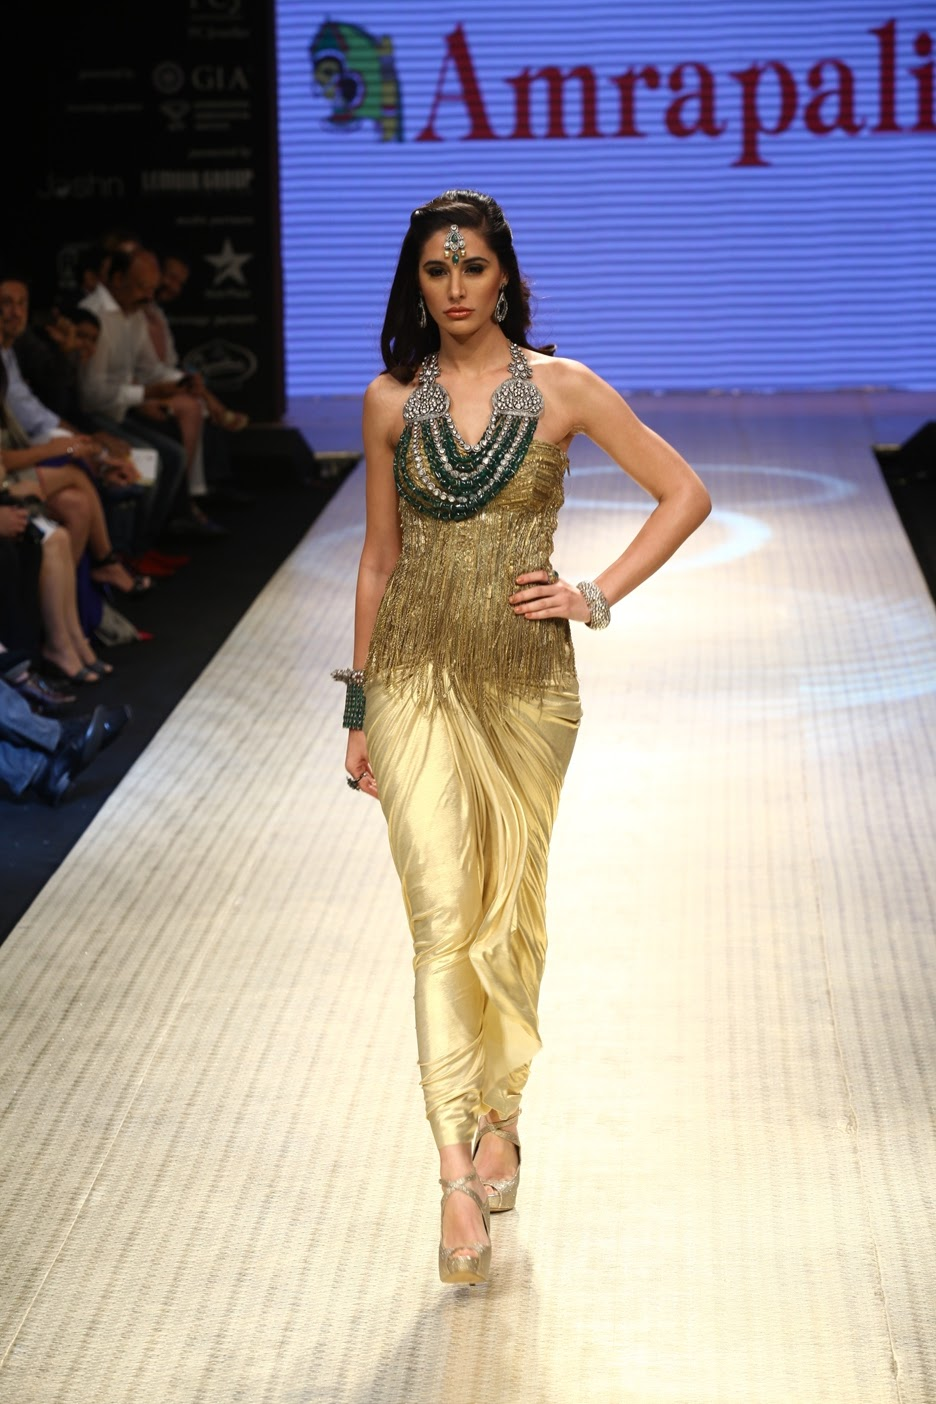 To acquire Fakhri nargis displays amrapali jewels at iijw pictures trends